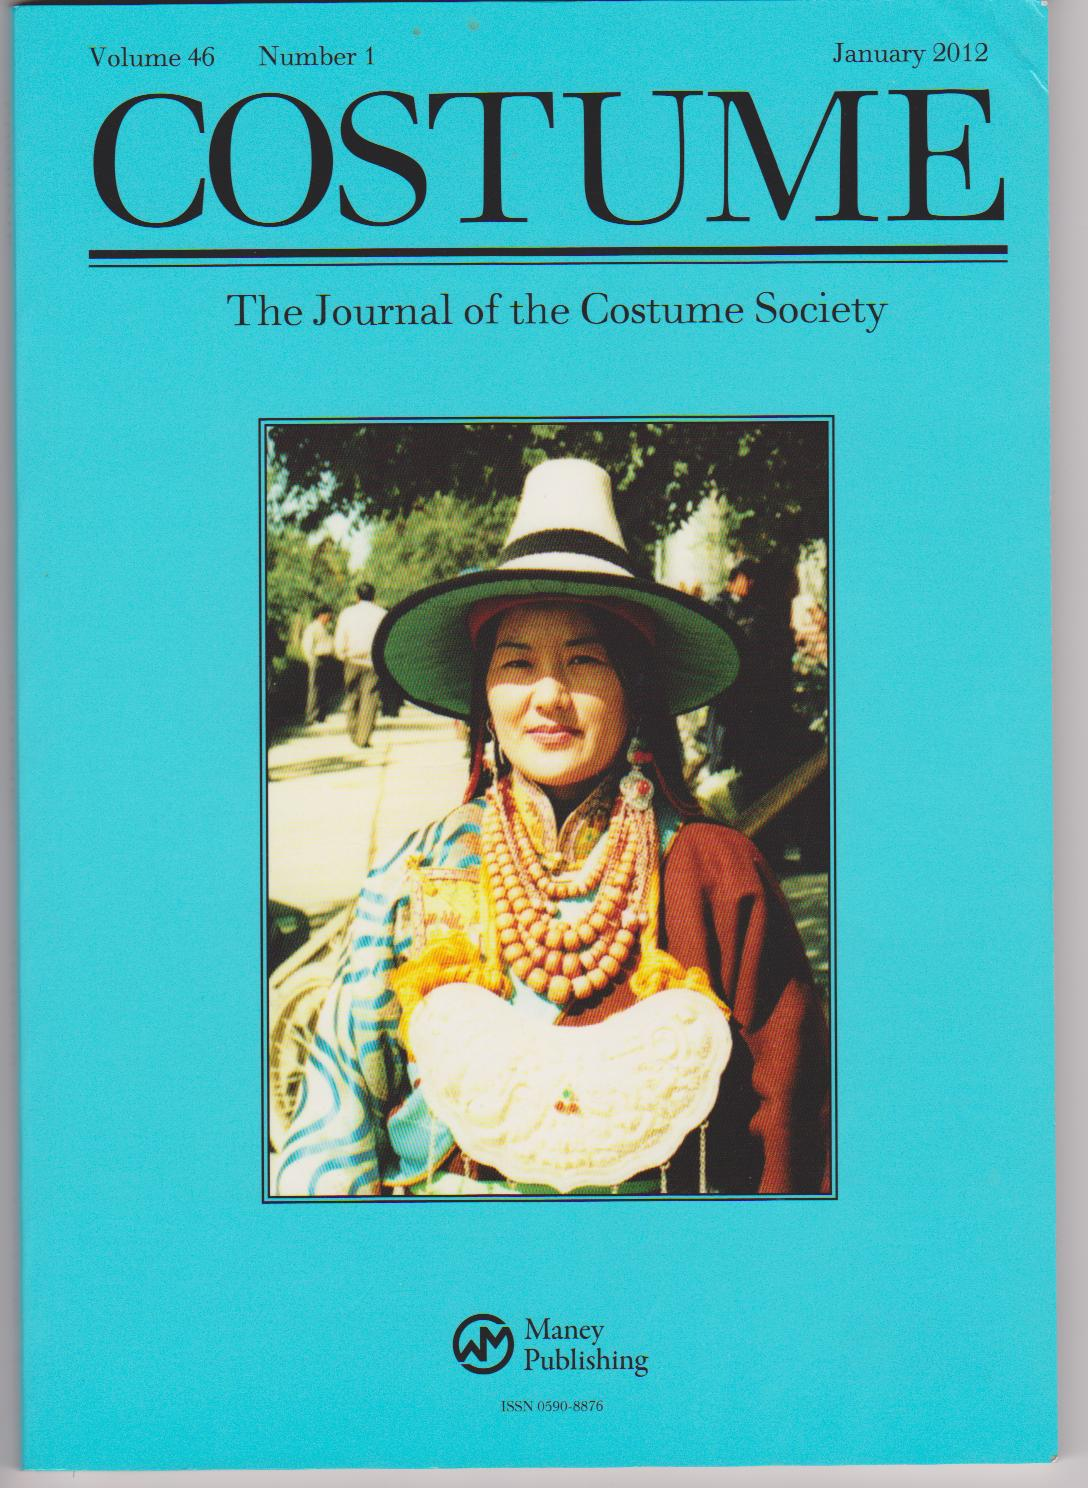 Costume Society Magazine - Costume Journal - Researching Eighteenth Century Costume - Georgian Clothing - Middle Class Clothing - Military uniforms - 18th Cent Costume - HandBound Costumes Customers Library